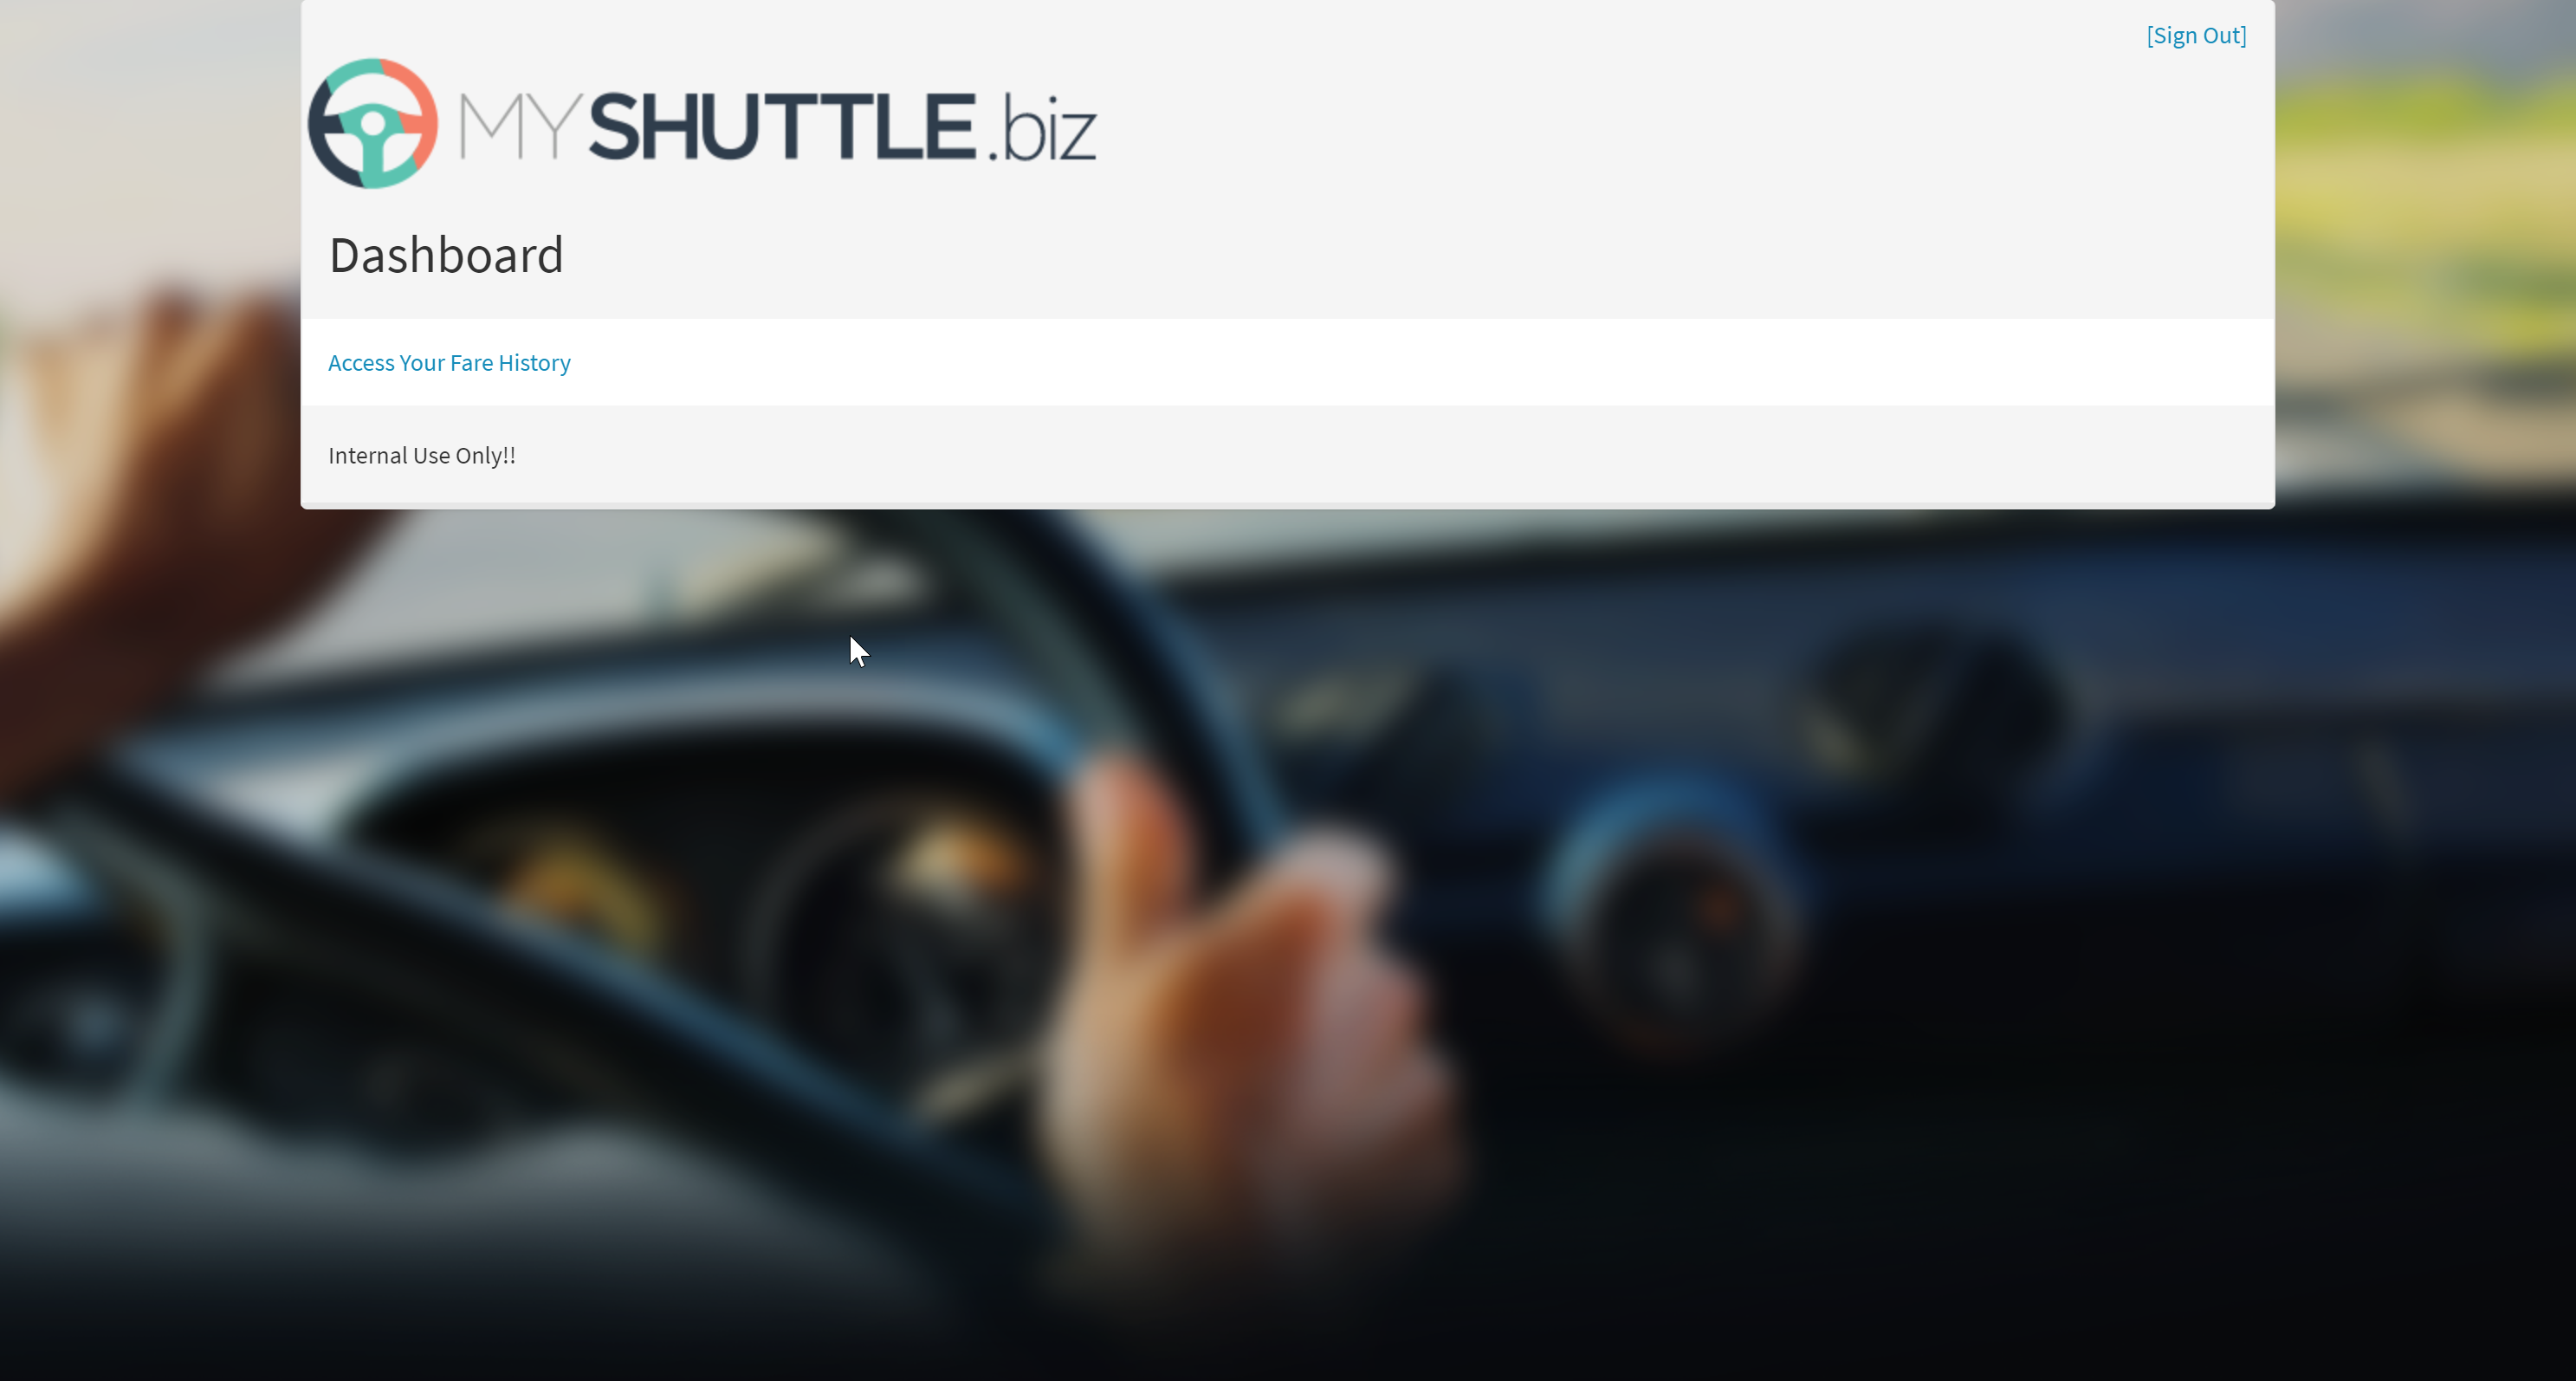 MyShuttle page after login